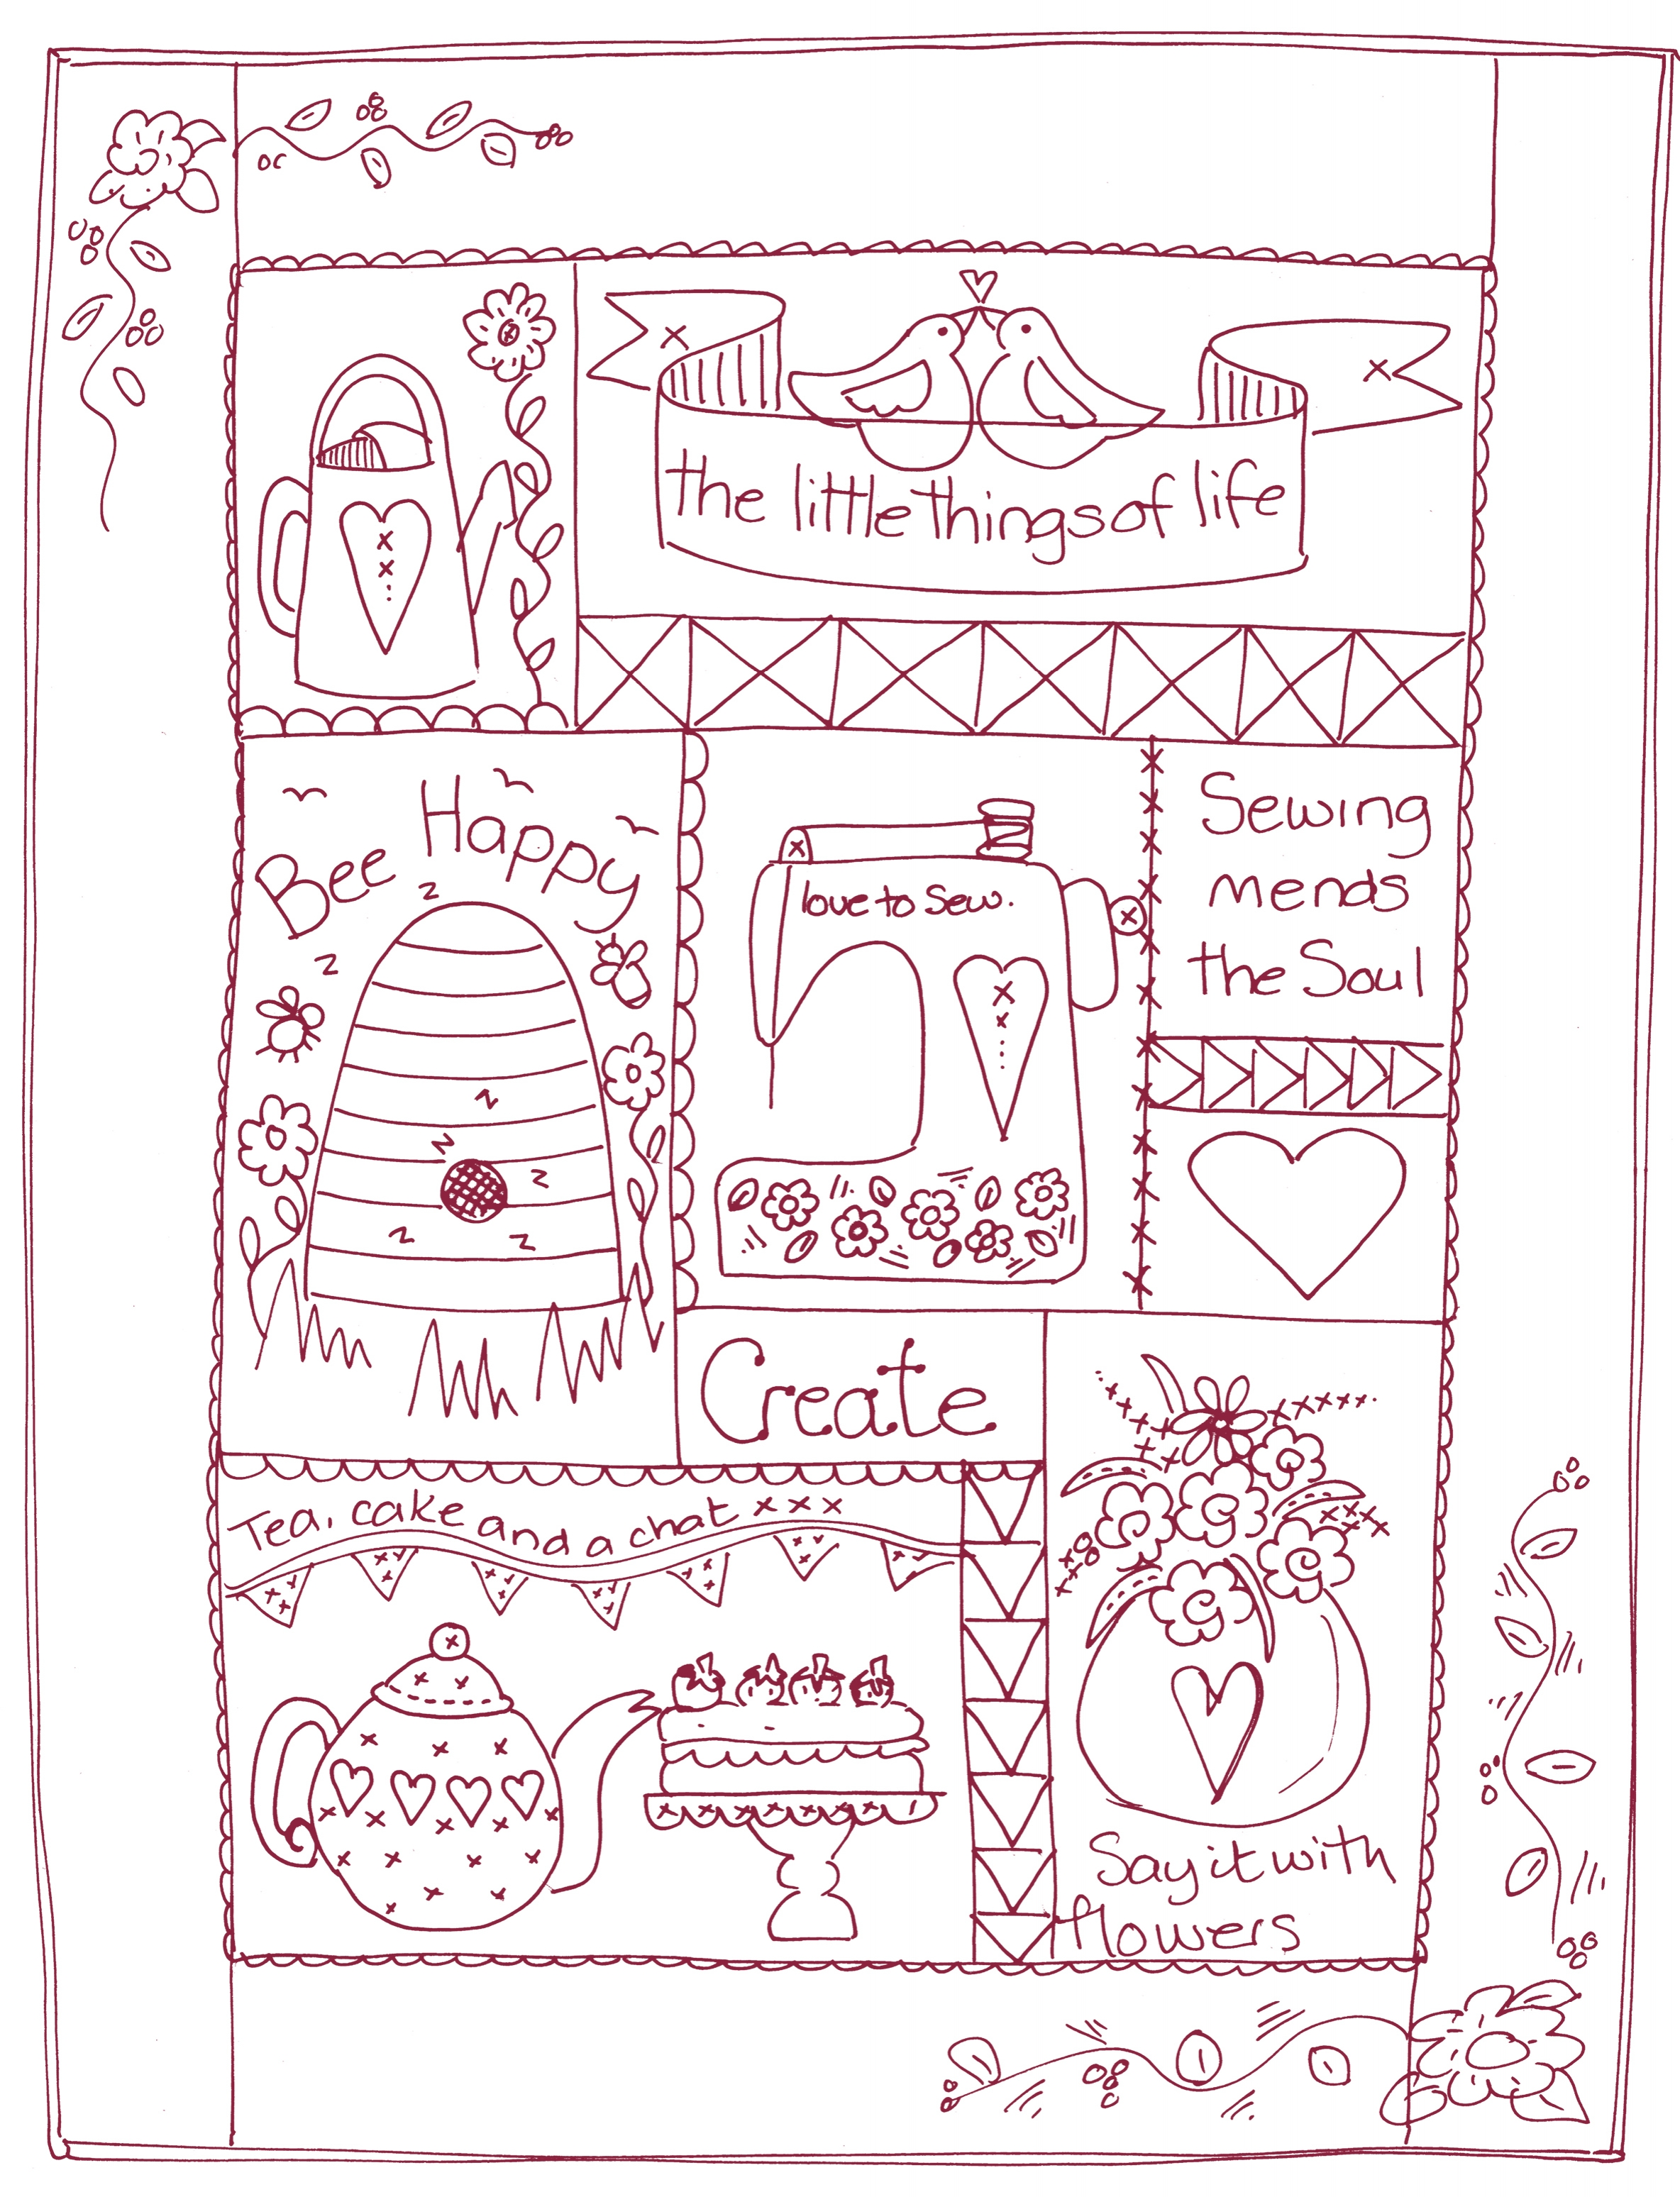 """Mandy's exclusive Secret Society Redwork Quilt. The pattern, motifs and iron-on-transfers are for Members Only and are not on general sale. Finished size approx 30"""" x 20""""."""